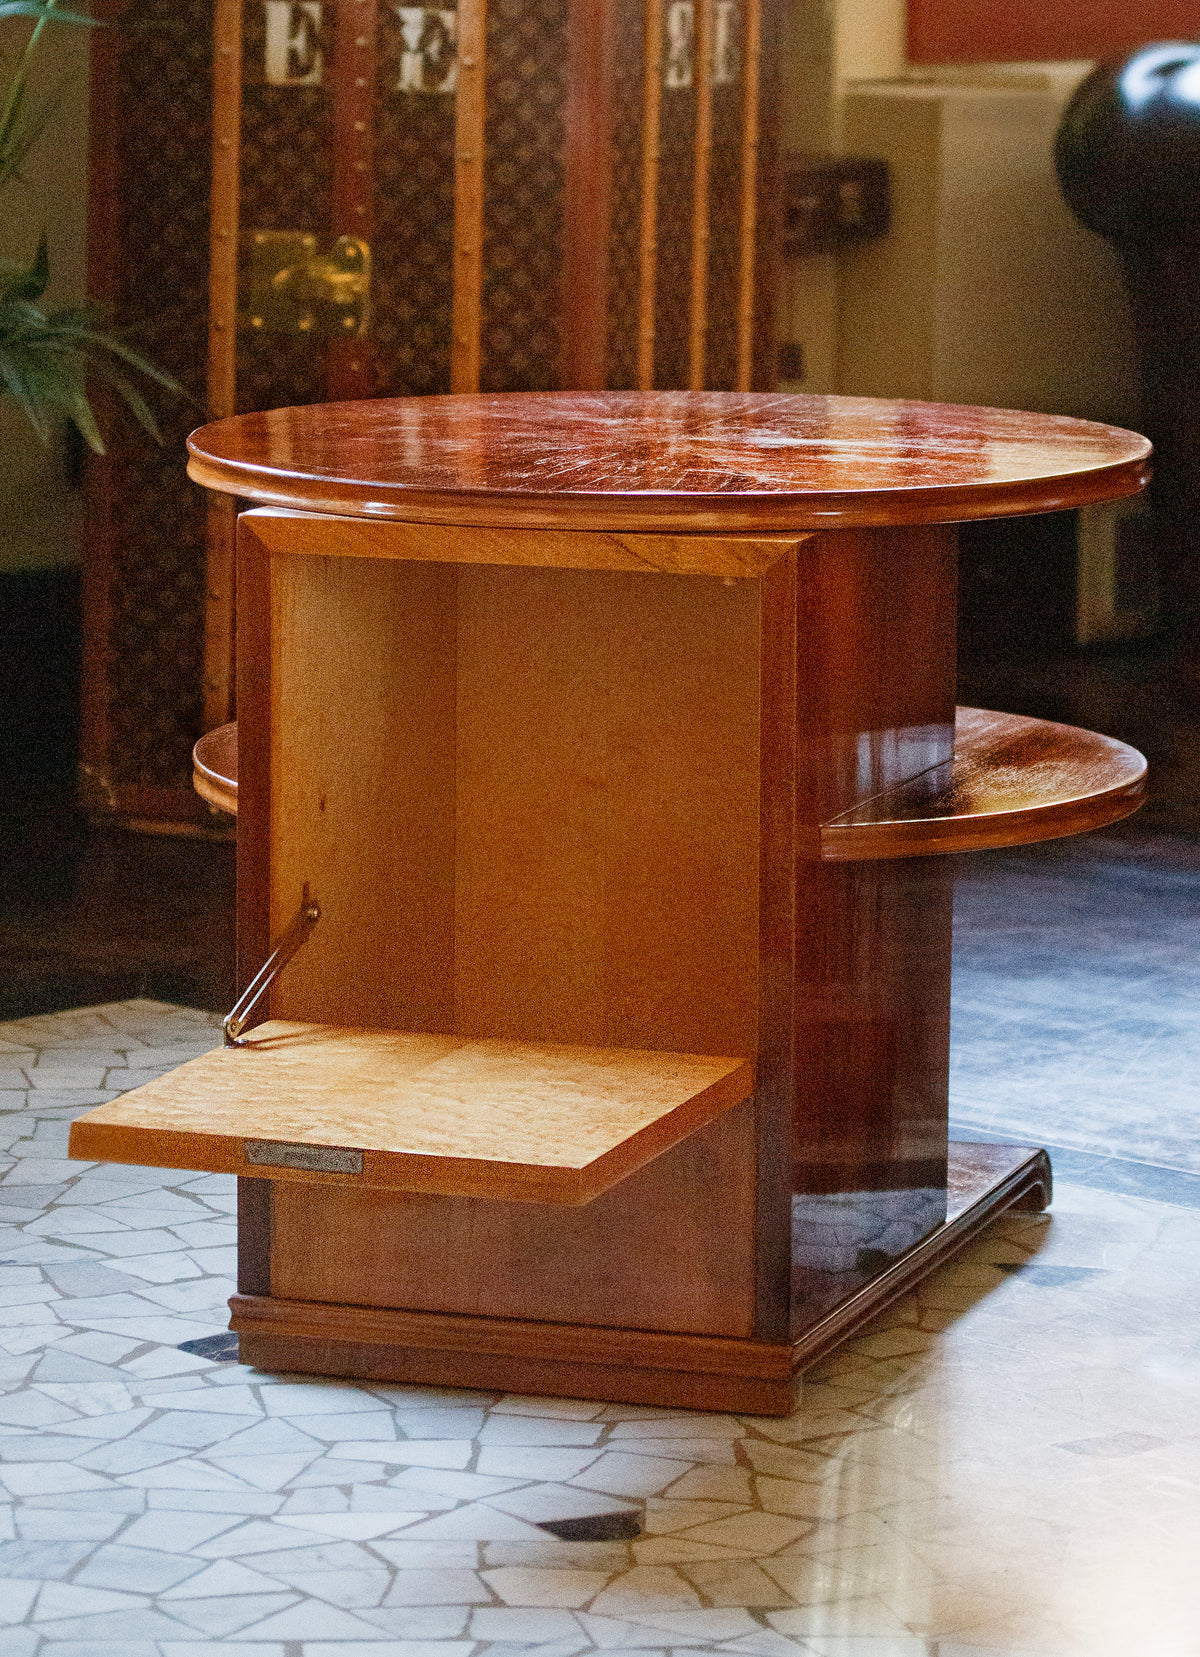 Tavolino Tondo in Noce - 1940 - Walnut Rounded Coffee Table